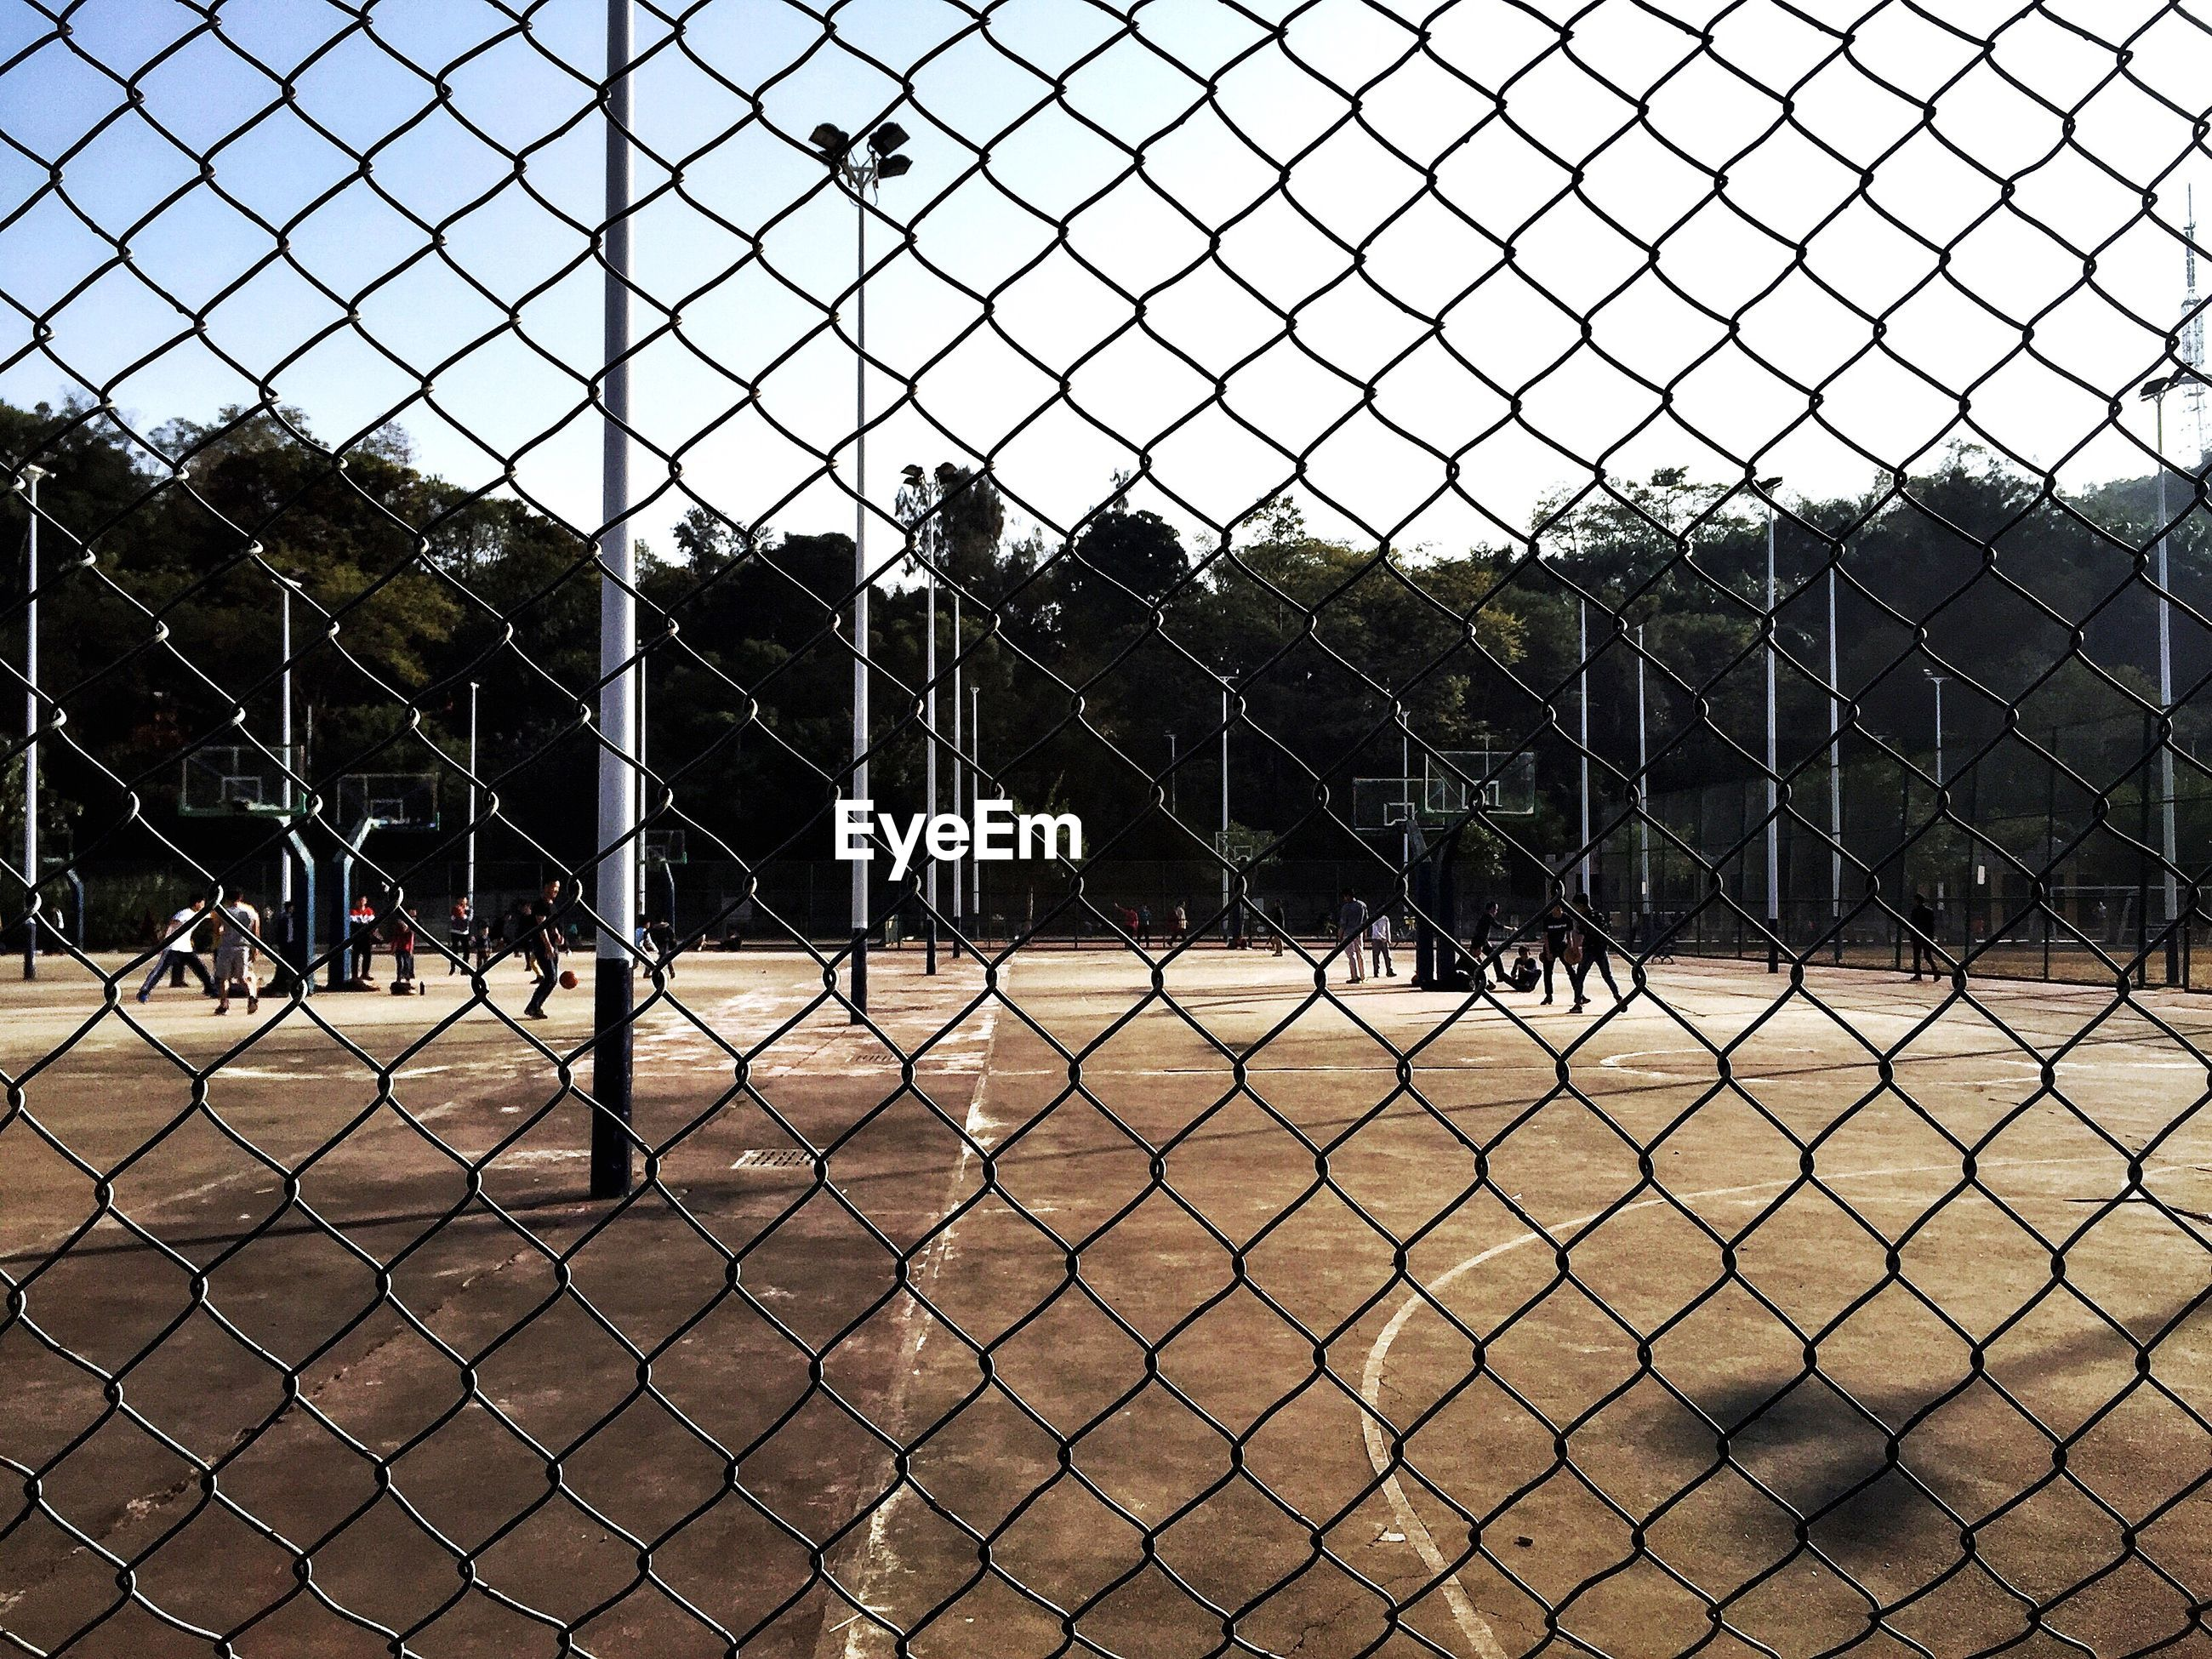 fence, chainlink fence, protection, safety, security, metal, wire mesh, no people, outdoors, day, baseball - sport, sky, close-up